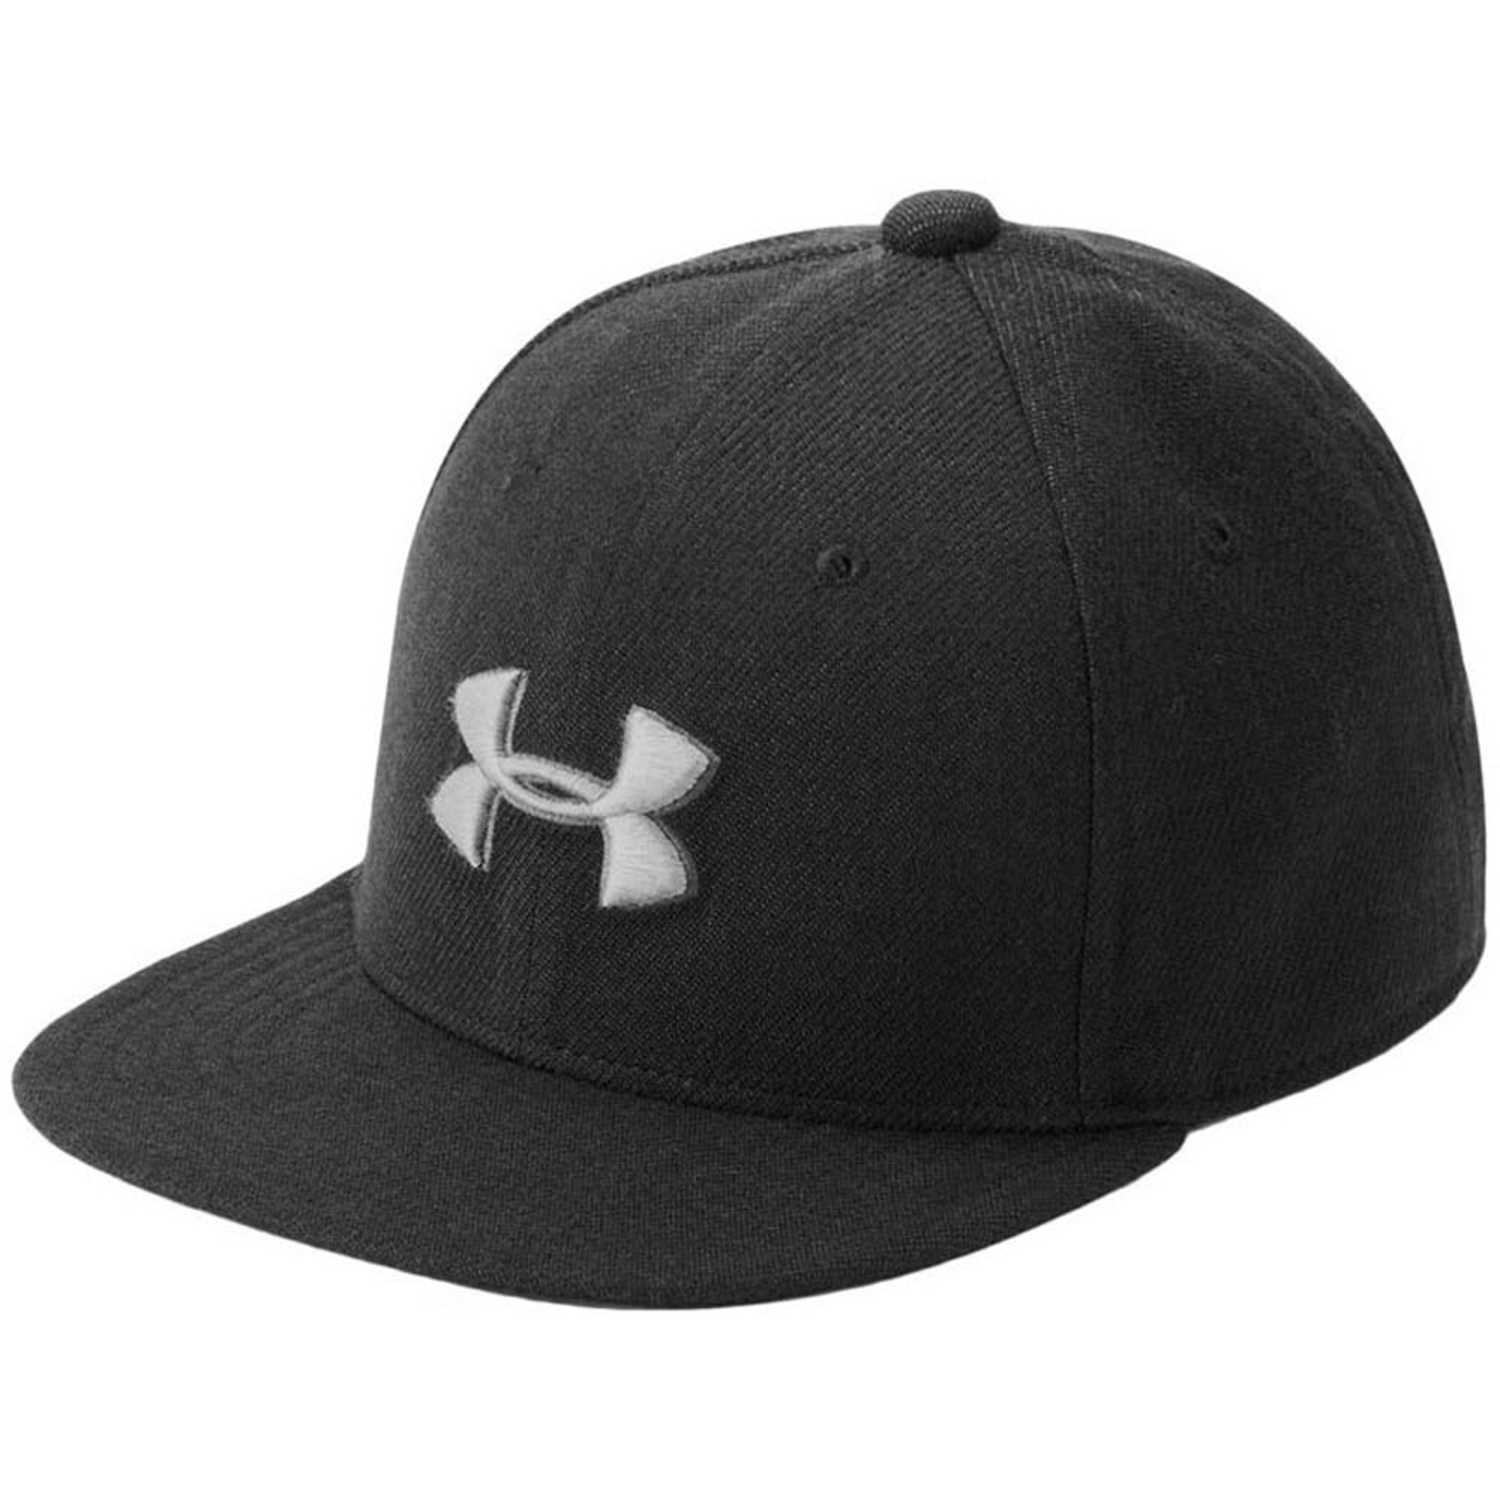 Gorro de Hombre Under Armour Negro boy's huddle snapback 2.0-blk